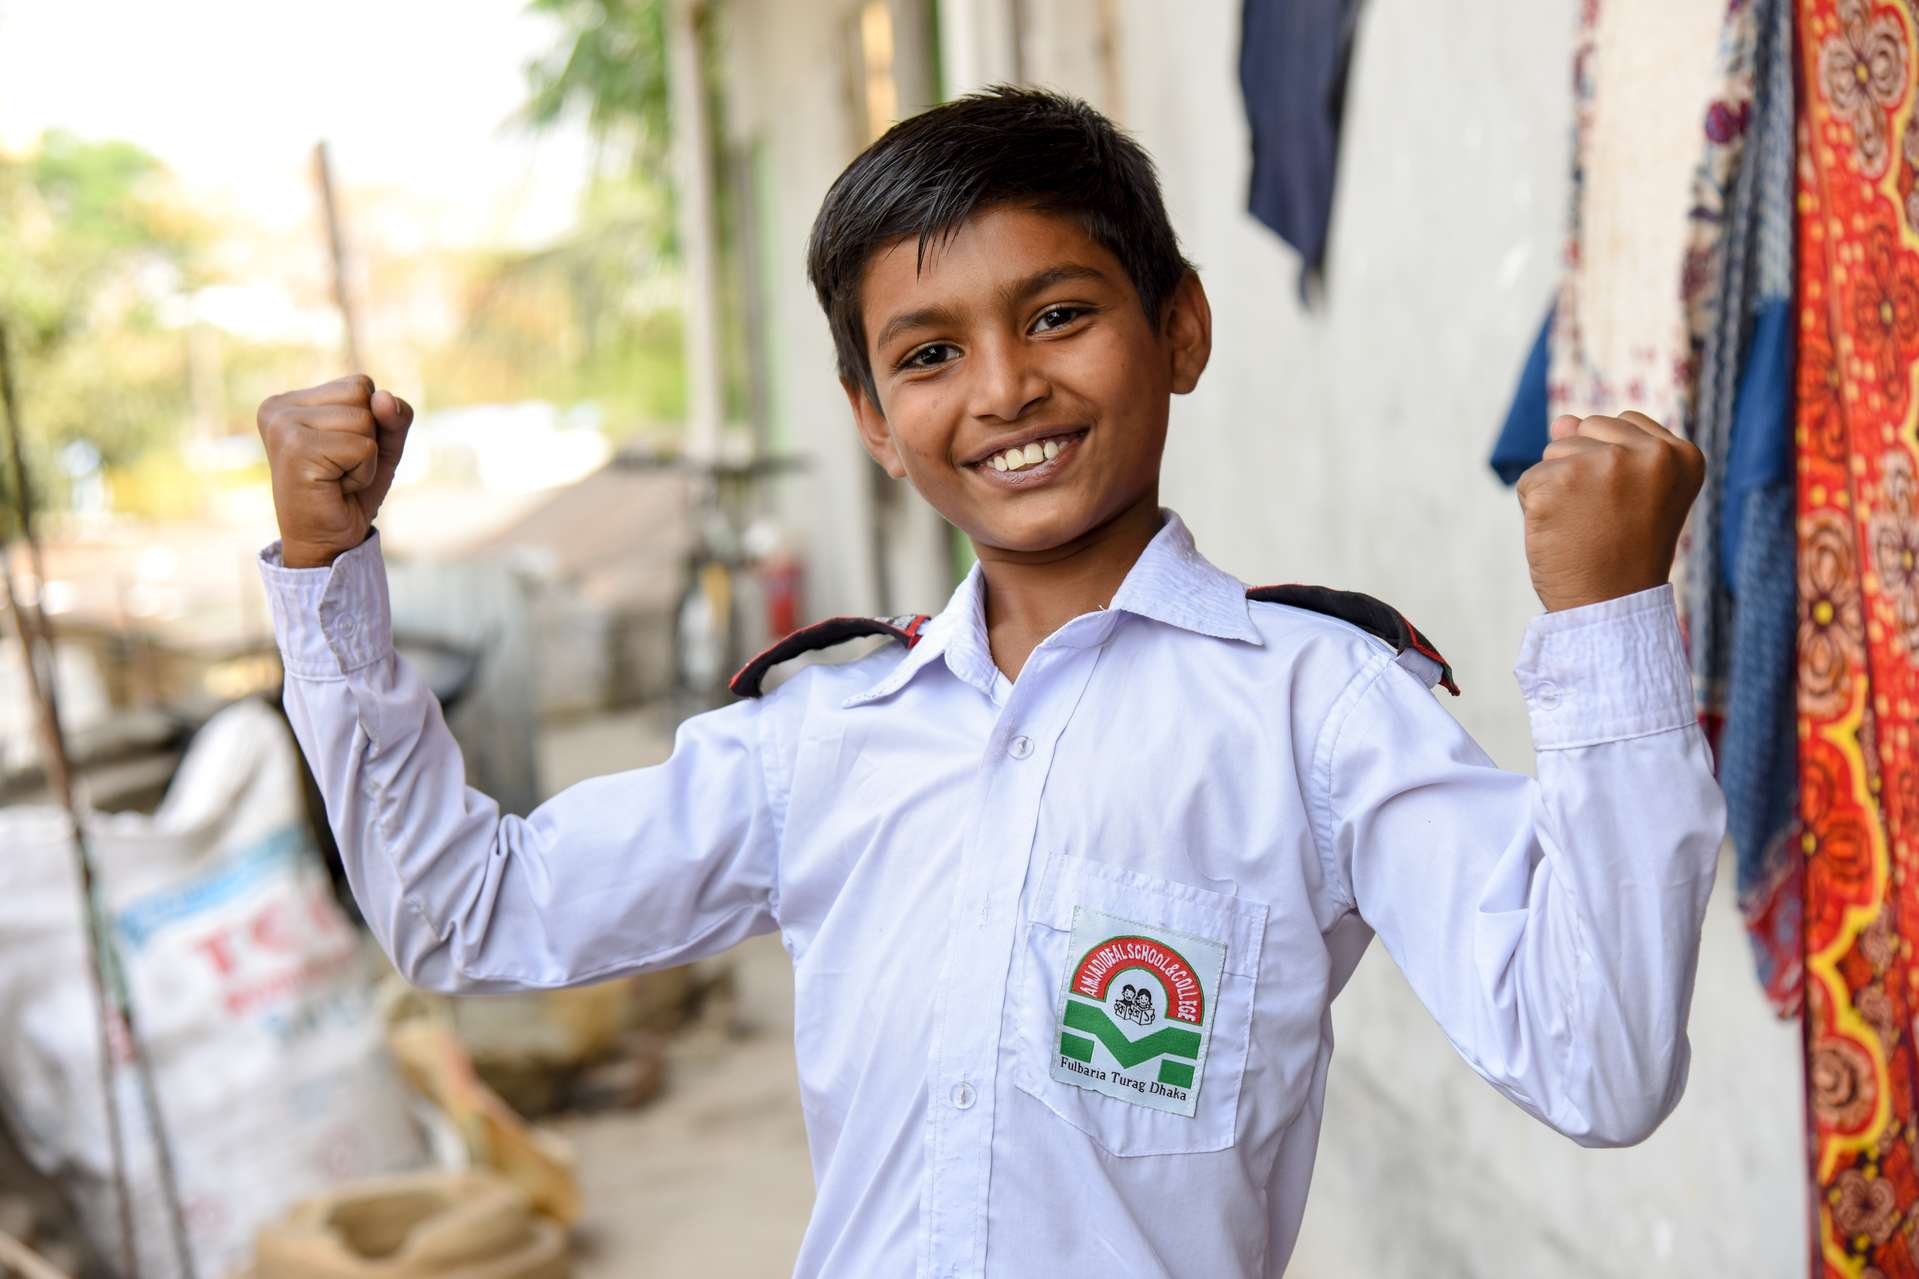 Boy flexes his muscles and shows off his uniform shirt.